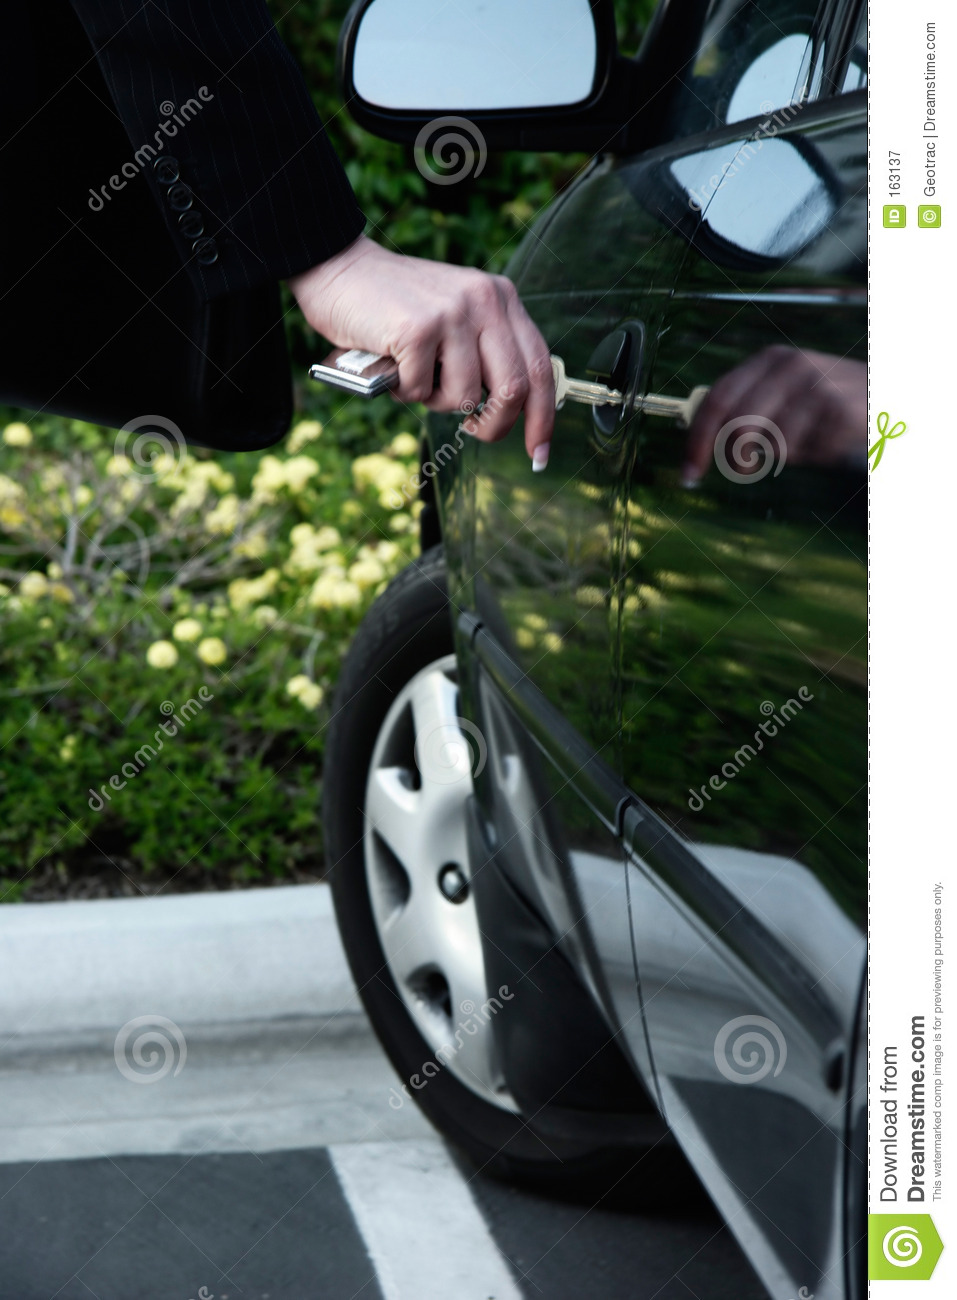 Business woman unlocking car